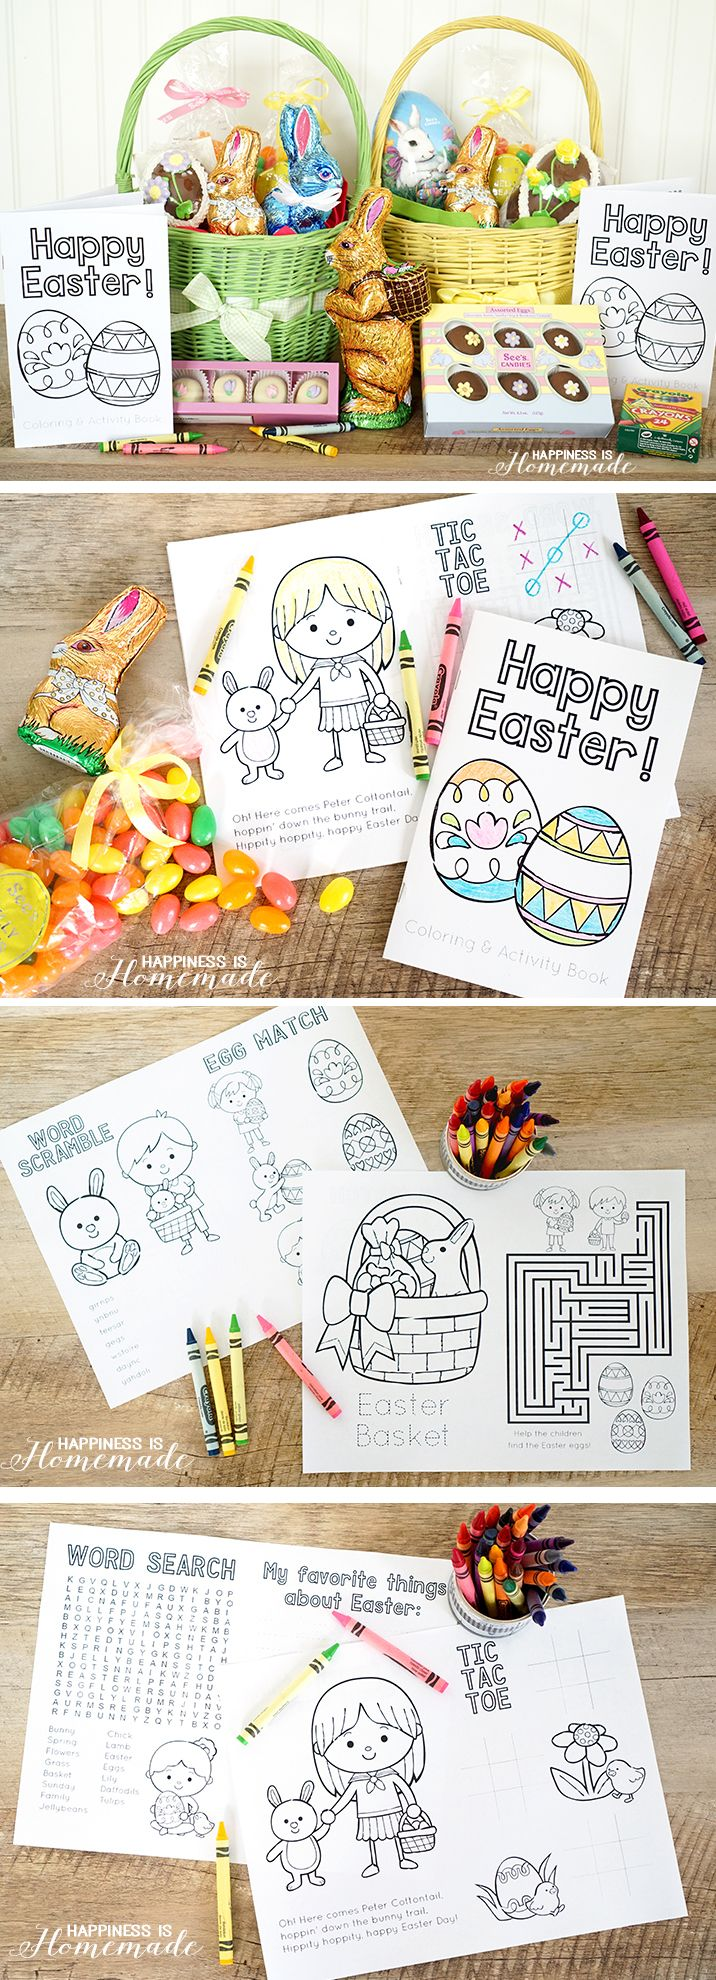 43 best easter ideas and traditions images on pinterest easter